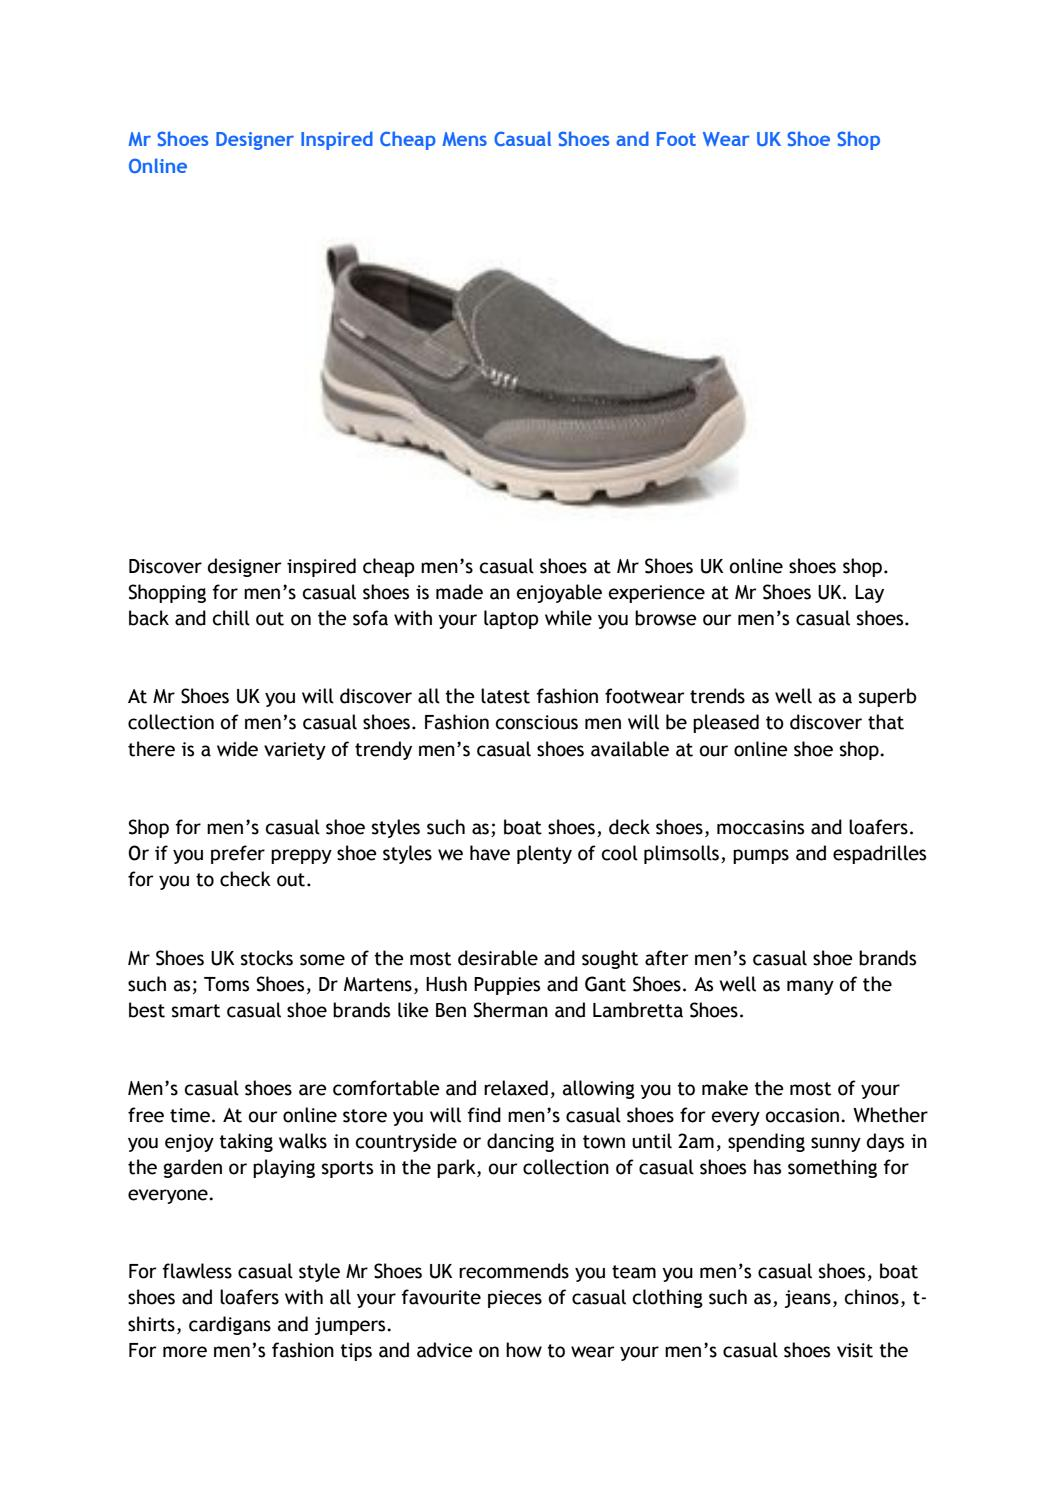 Mr Shoes Designer Inspired Cheap Mens Casual Shoes and Foot